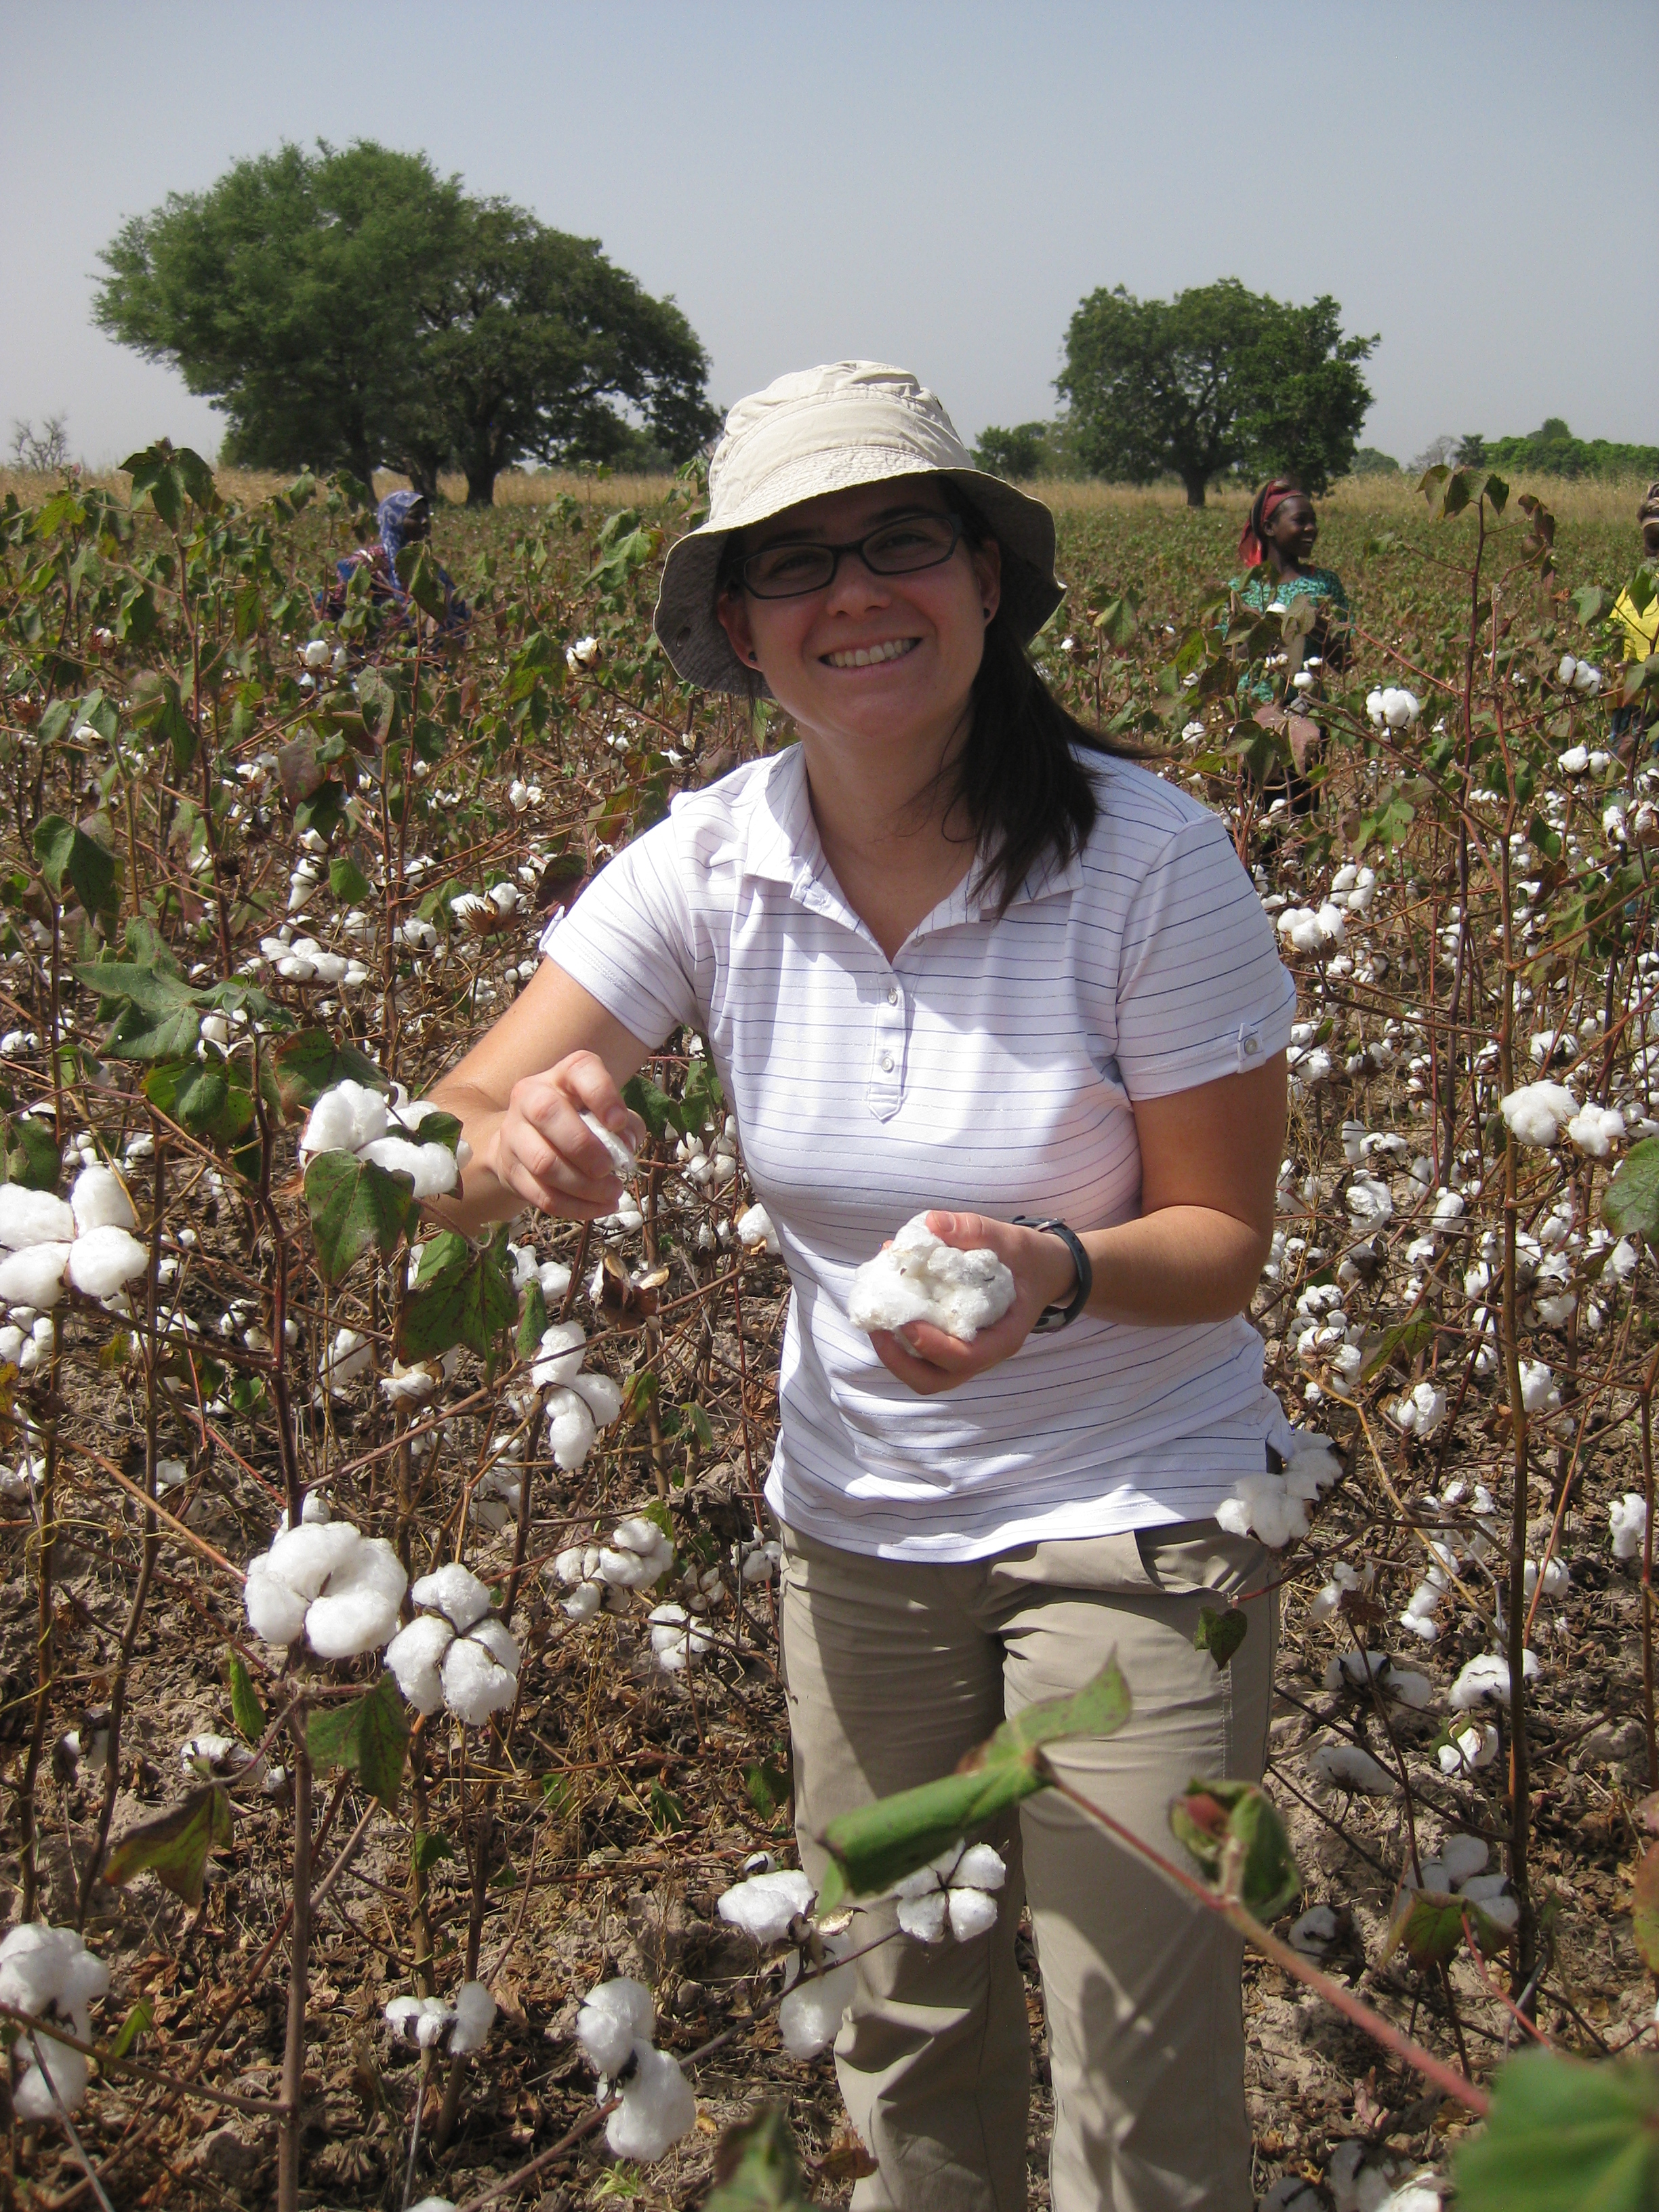 Vero_cotton field